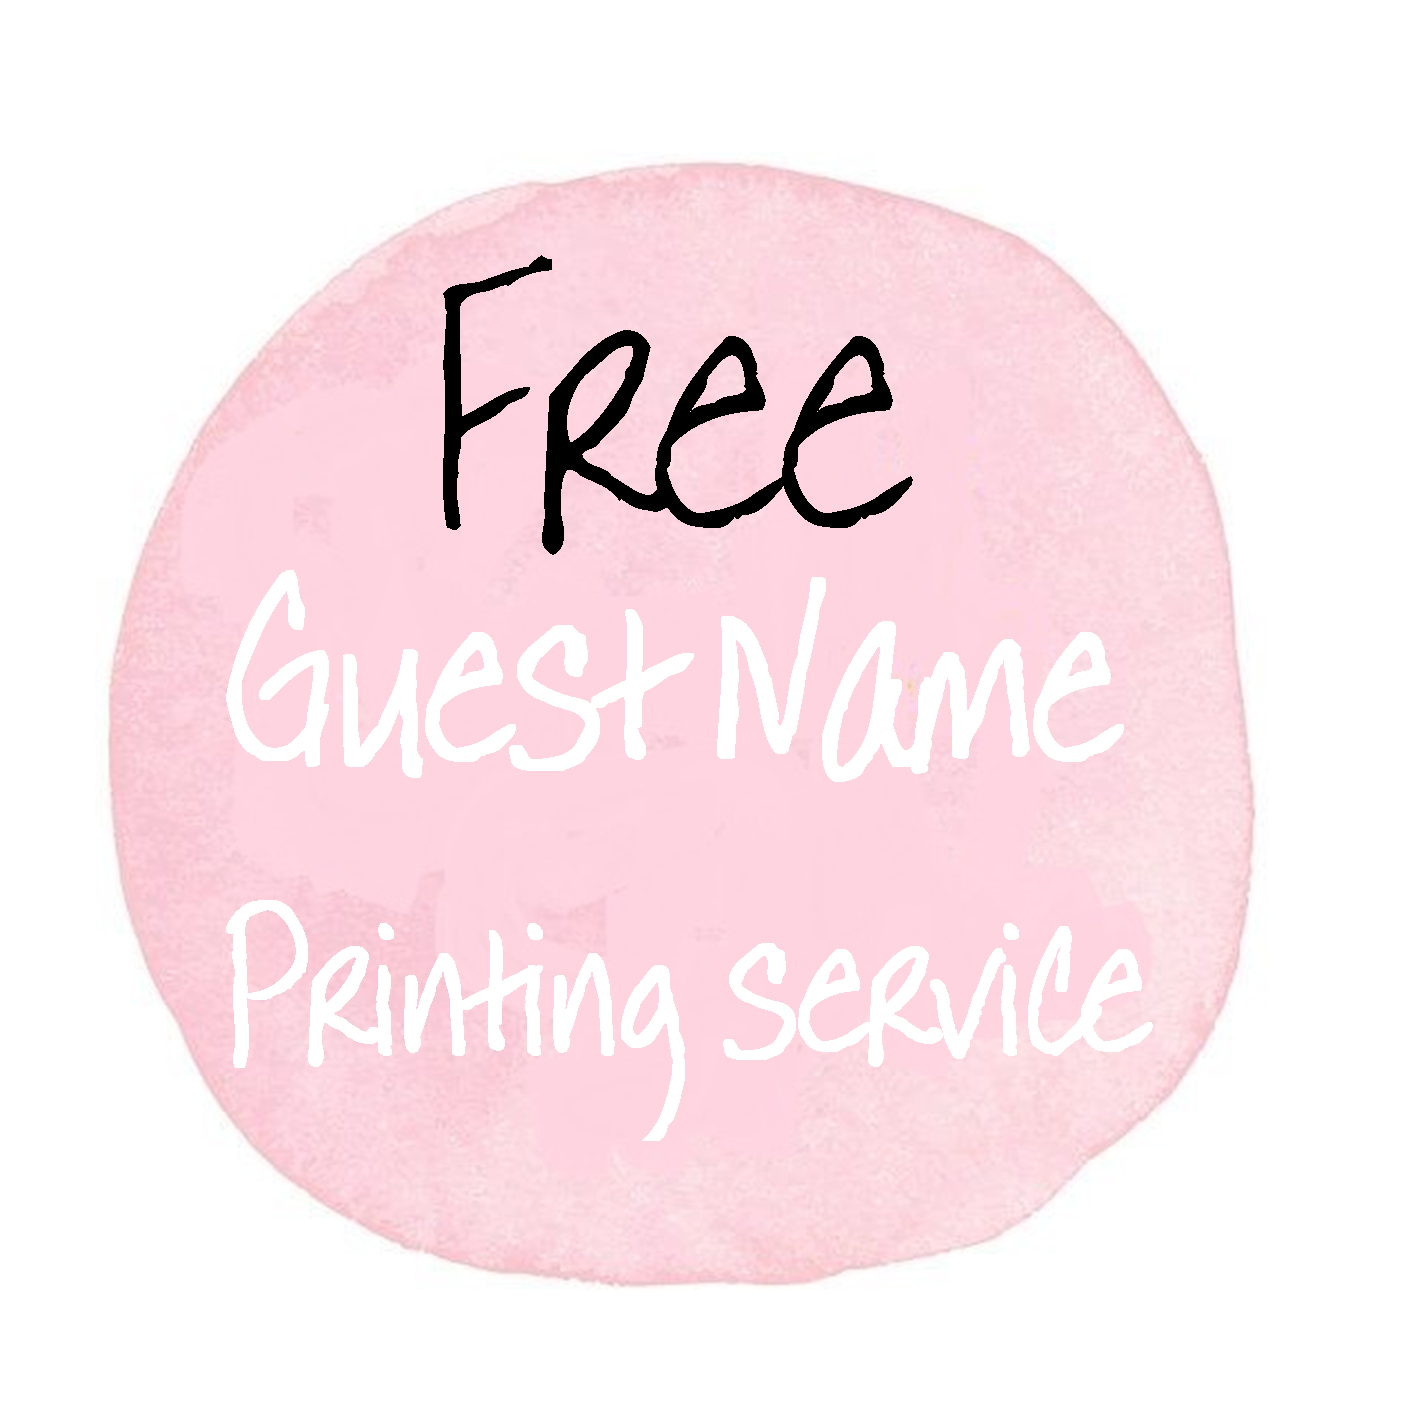 Complimentary guest name printing service